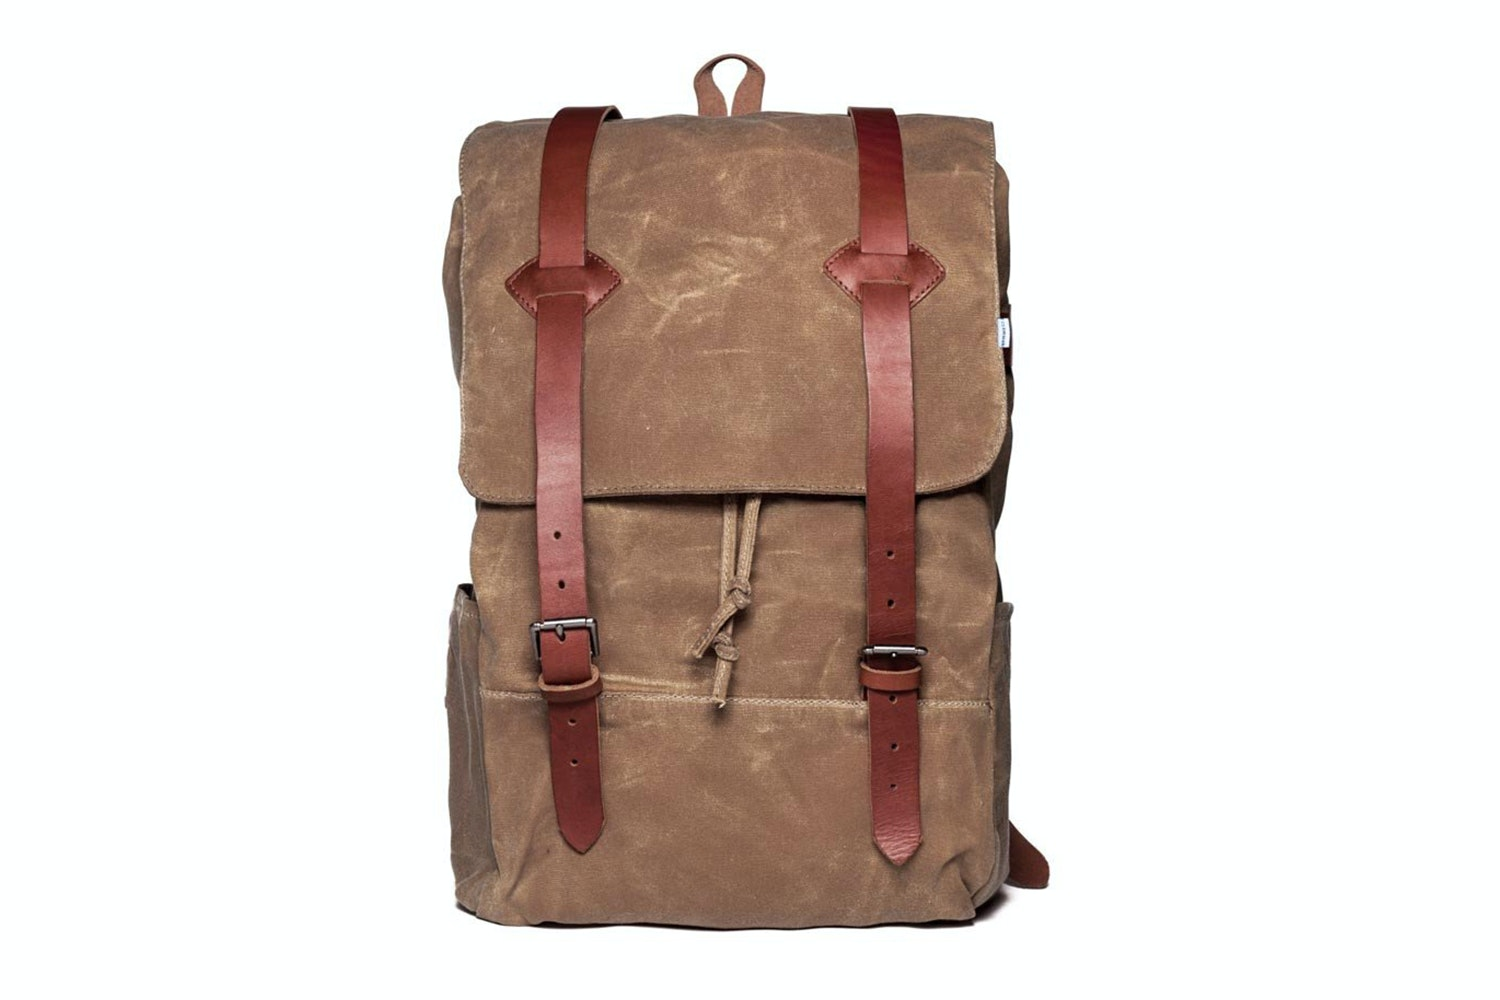 Backpack - Tan (+ $64)